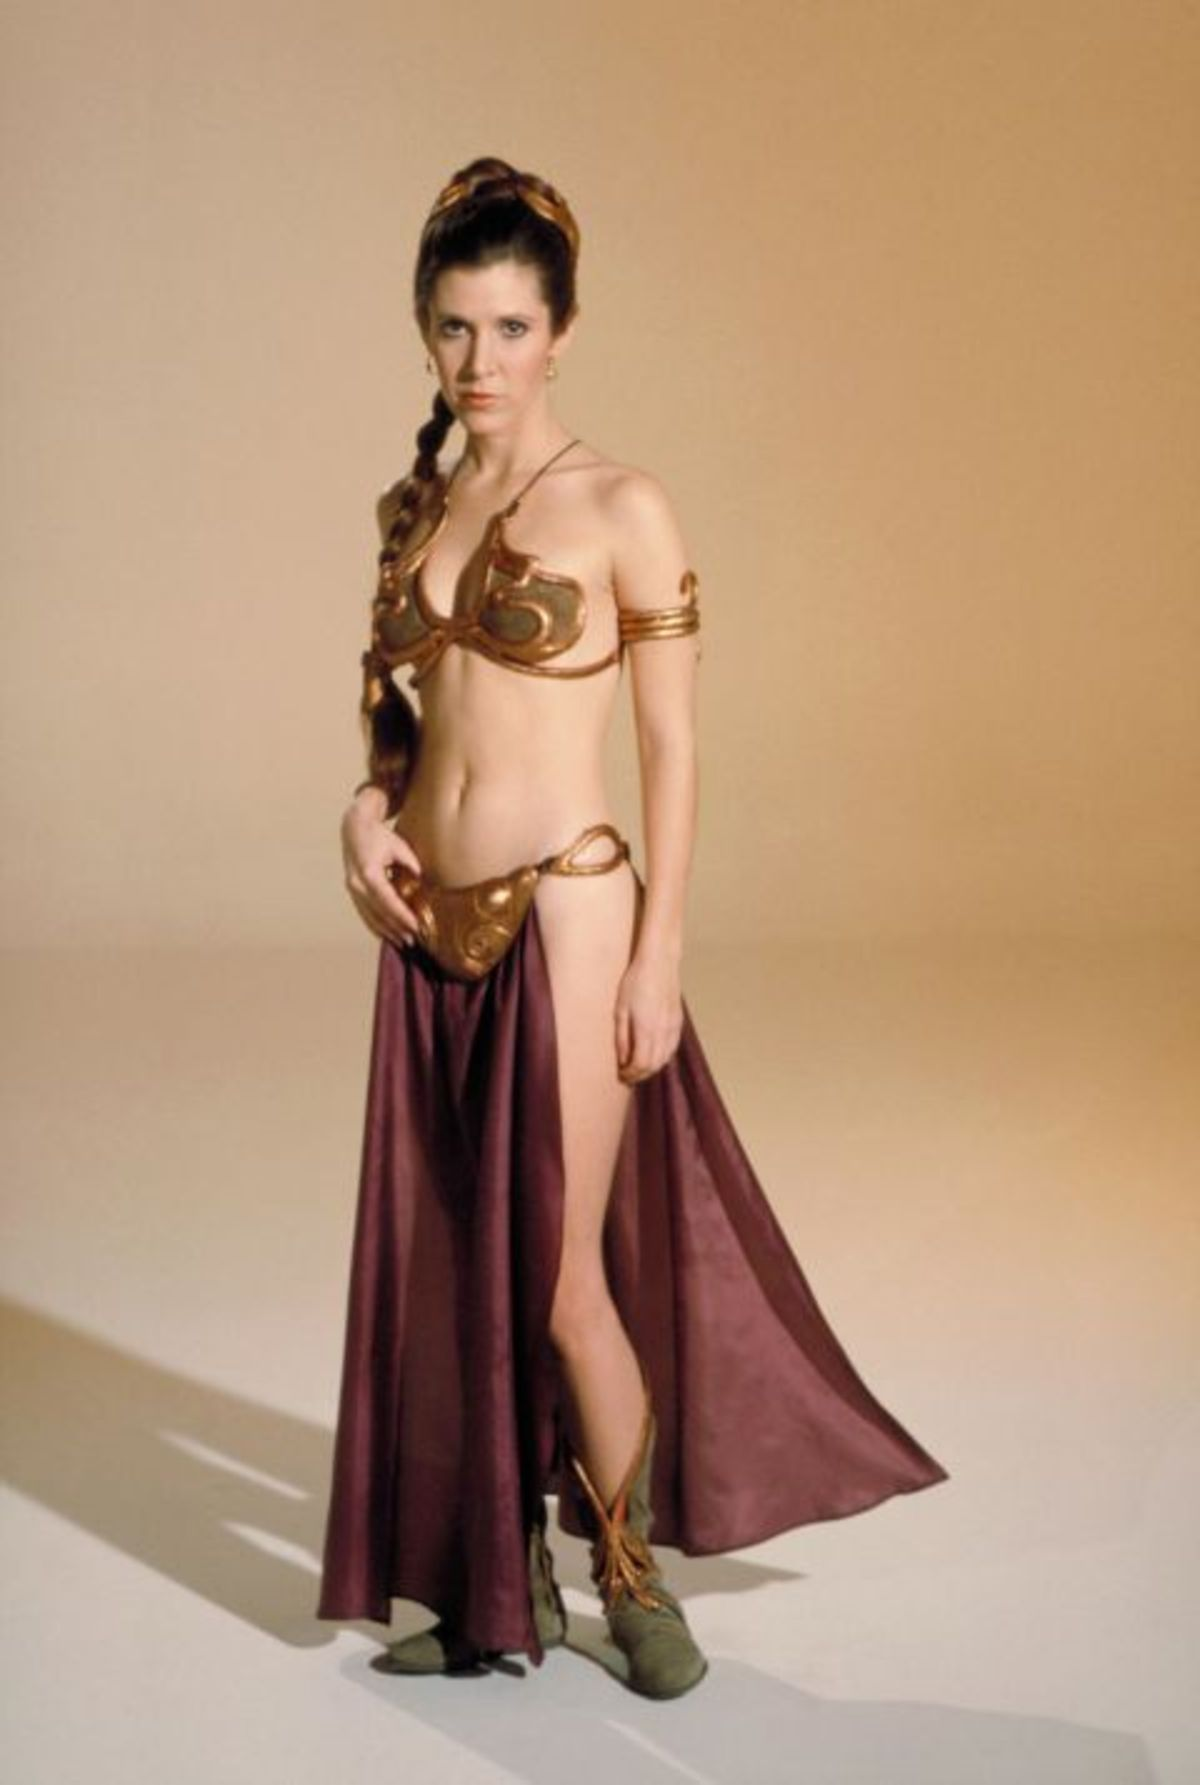 1464199404-1983-carrie-fisher-princess-leia